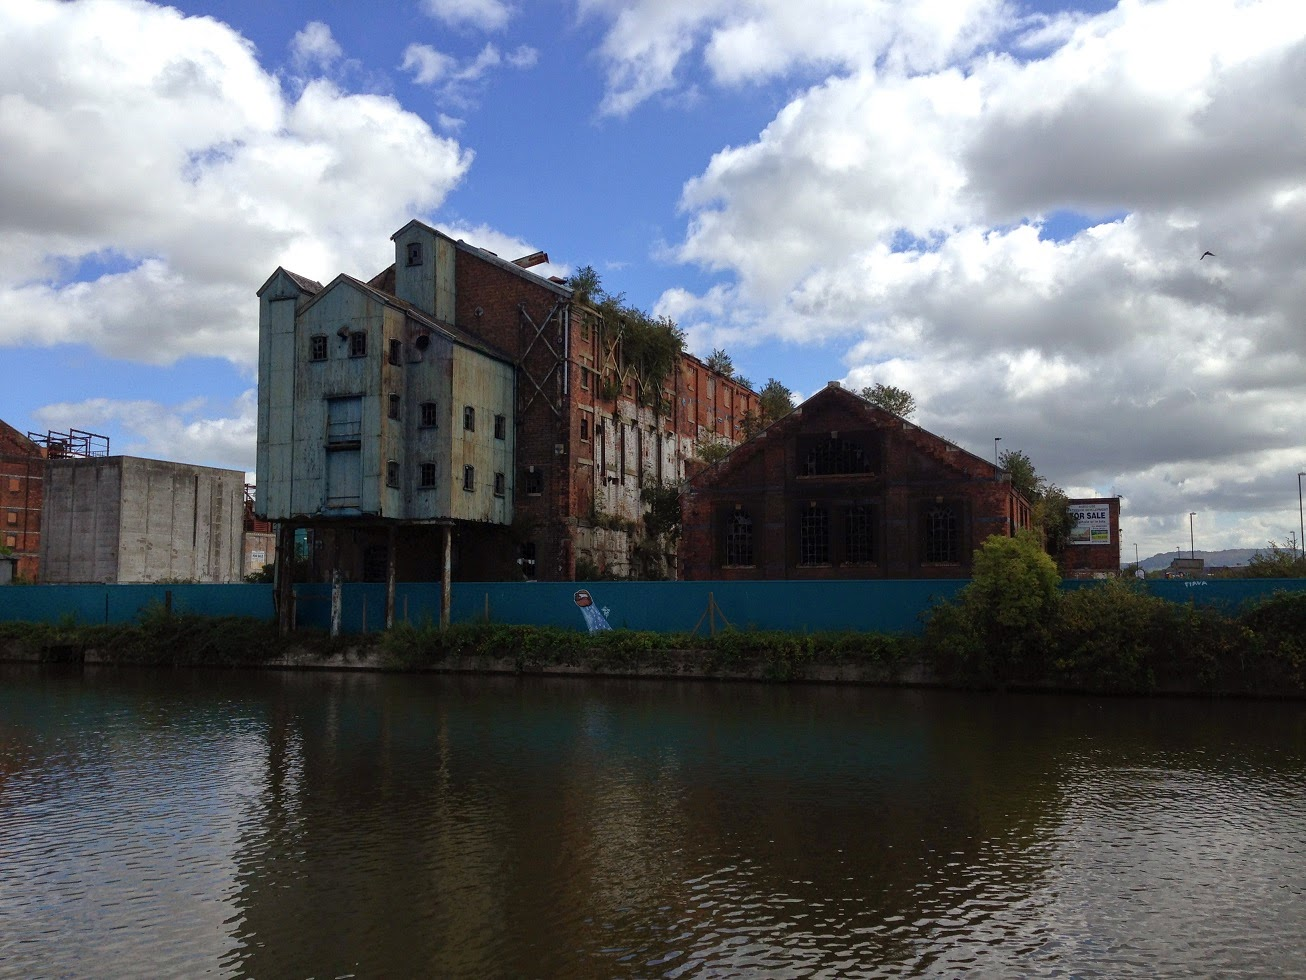 Abandoned building, Gloucester Docks